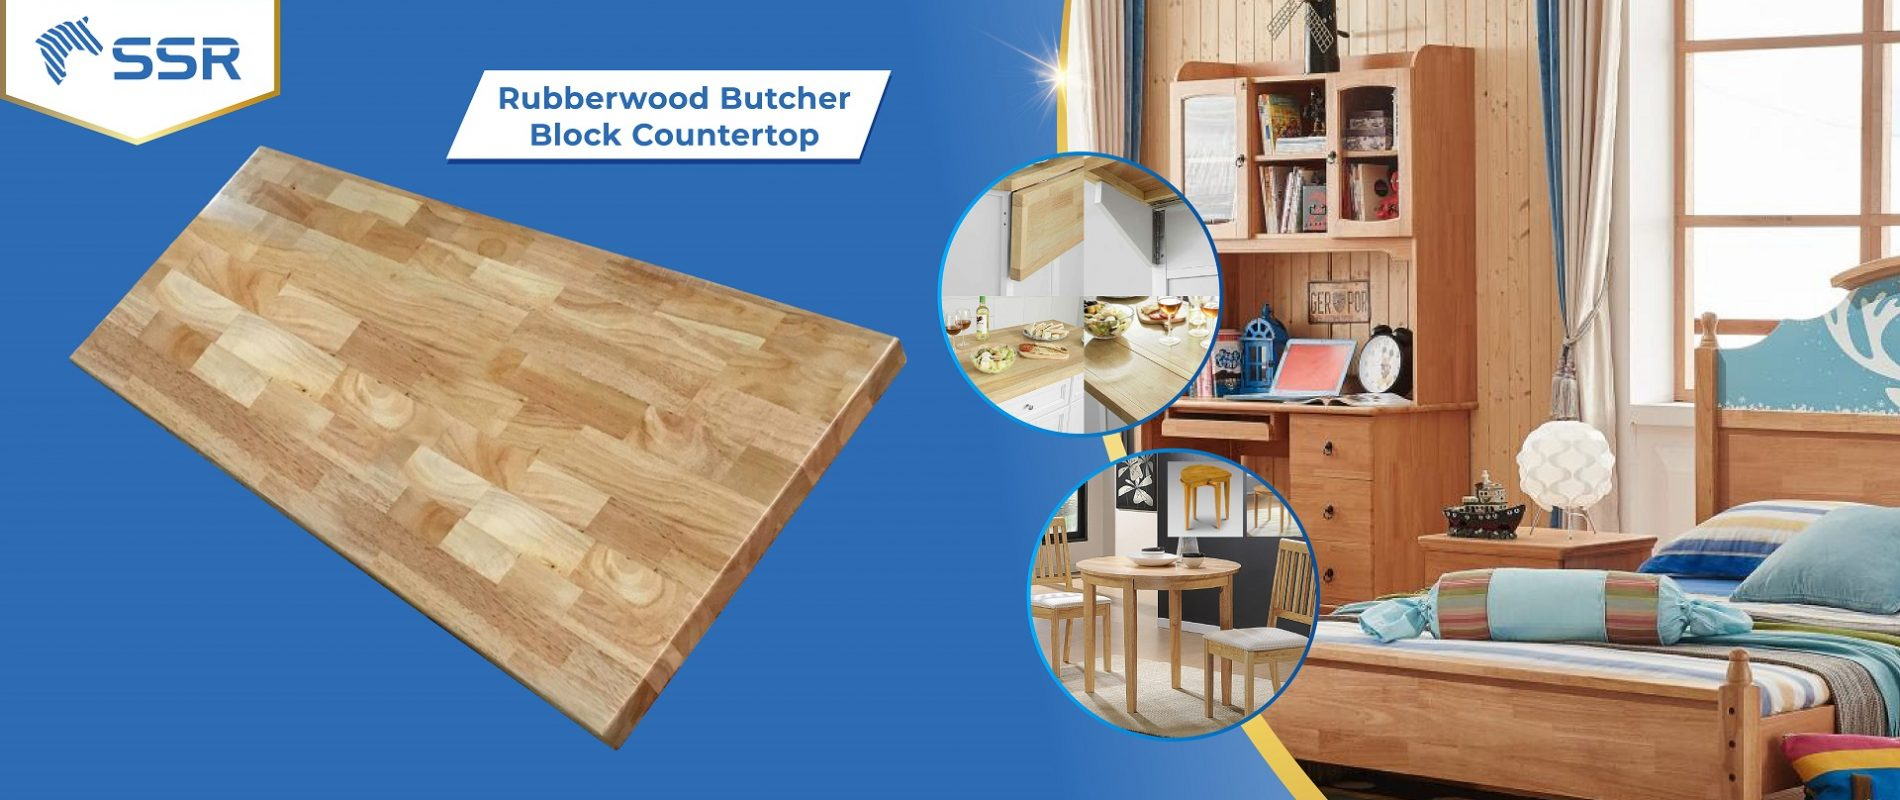 Rubberwood Solid Wood Hard Wood Finger Joint Wood Joint Wood Plank Wood Panel Wood Board Oil Coating Oil Finish Countertop Butcher Block Table Top Wood Industry Global Commerce Trade International Wood Product Supplier Wholesale FSC Certified International Business Import Export